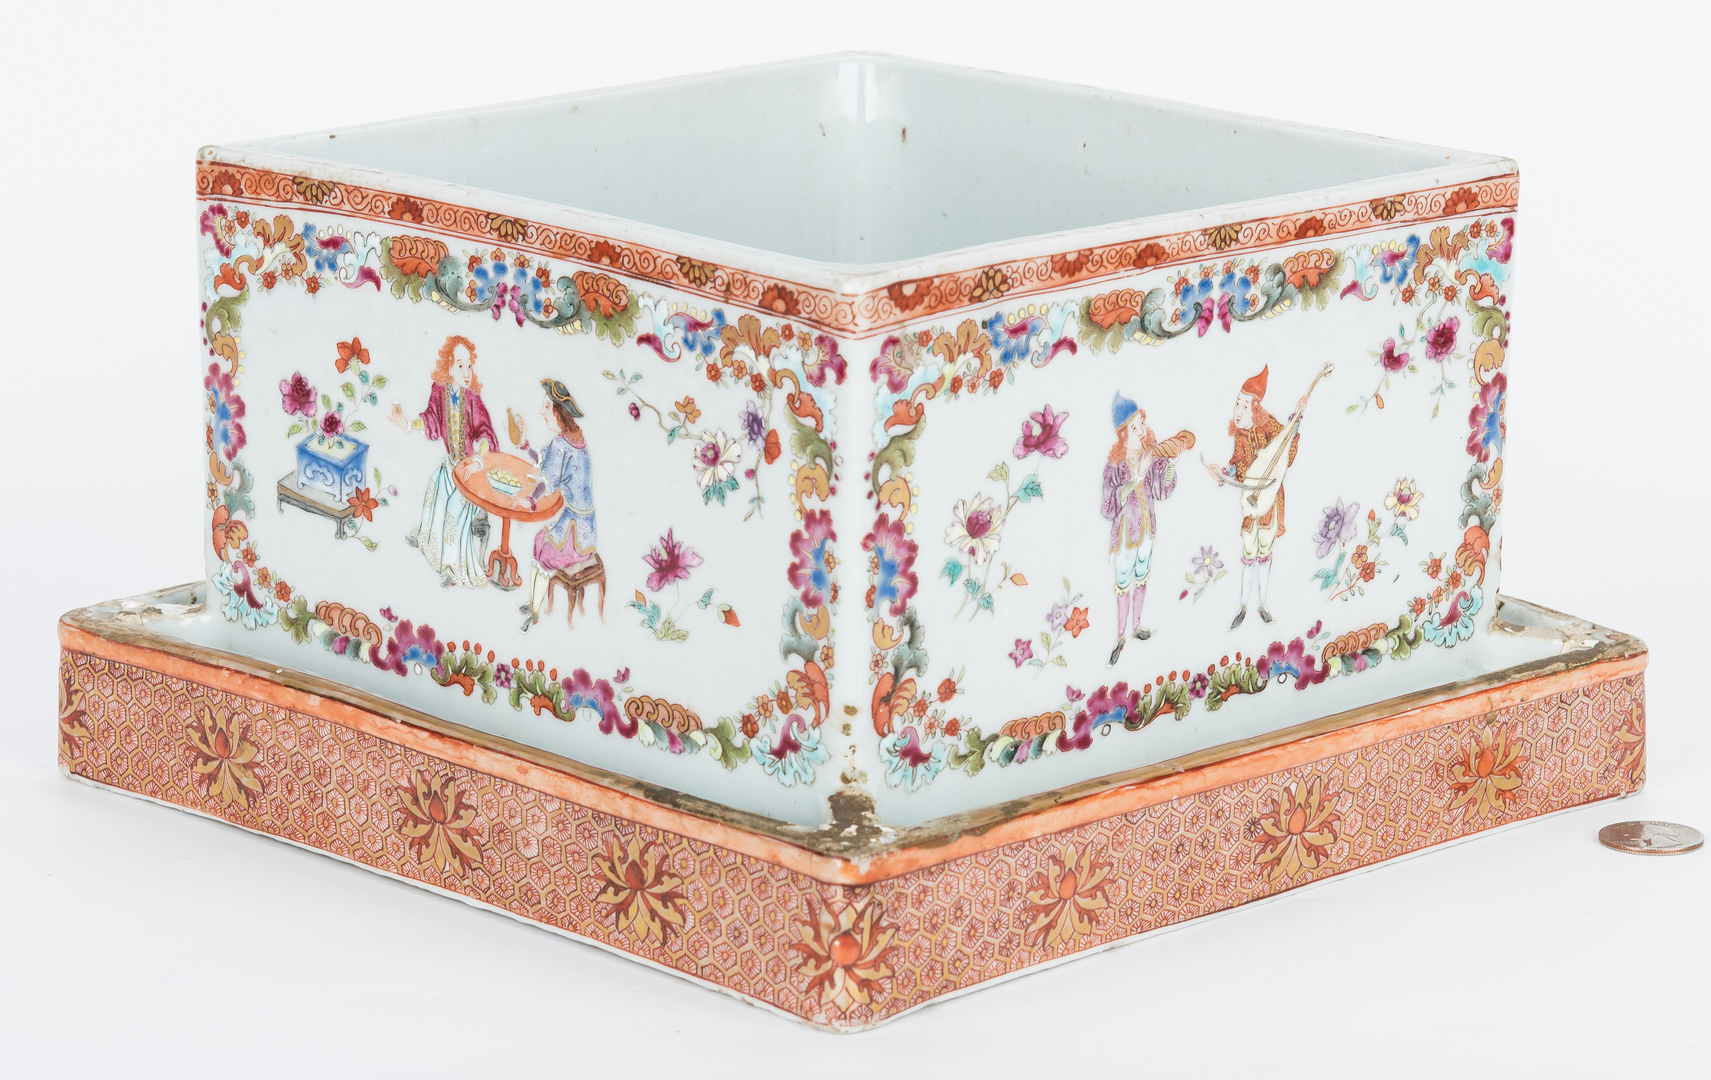 Lot 7: Chinese Export Famille Rose Porcelain Planter